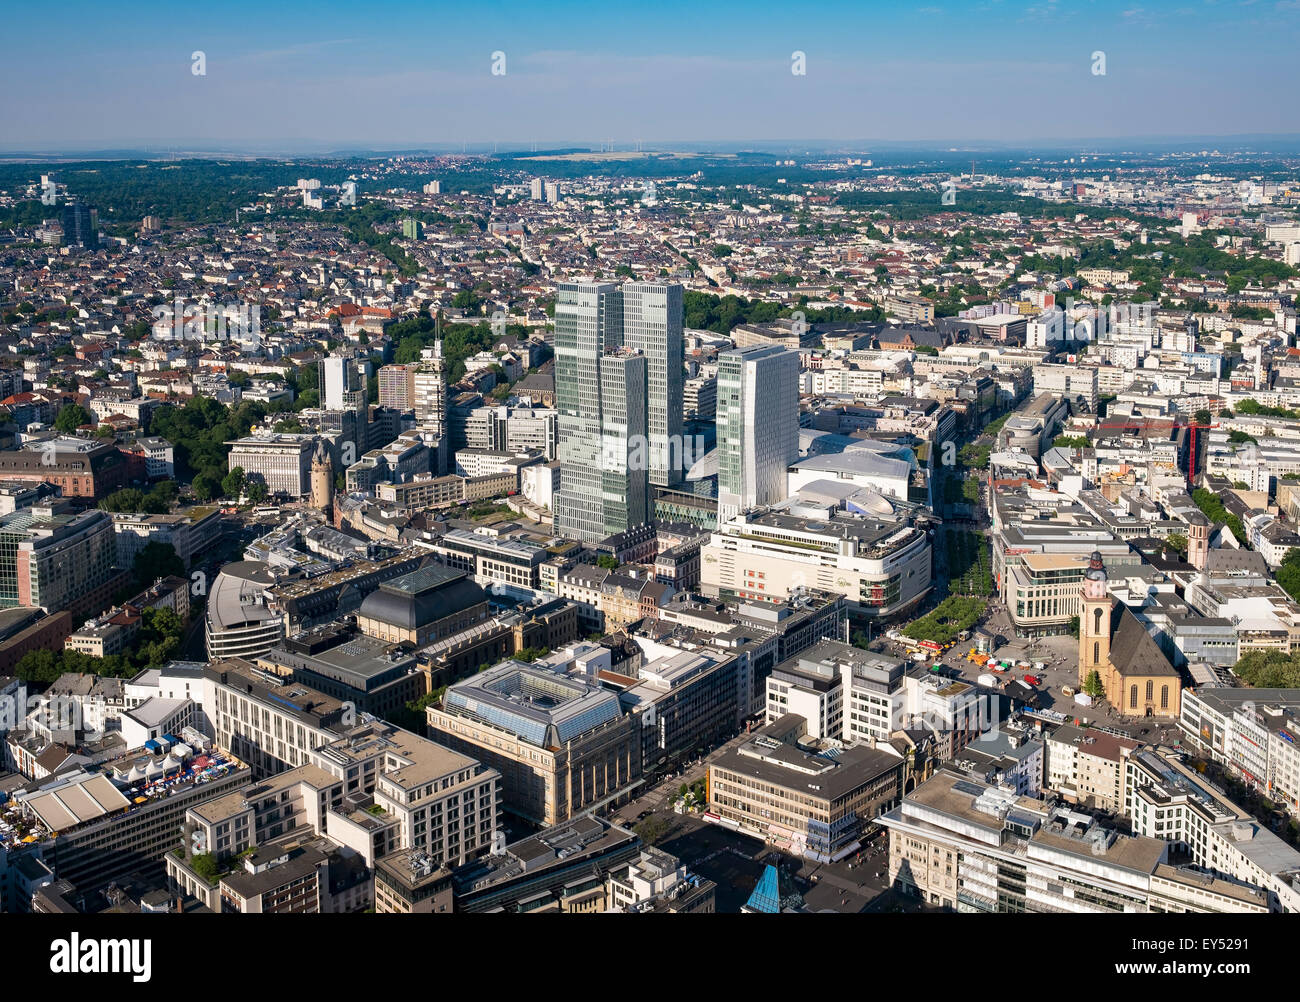 Palais Quartier and Zeil, city centre, view from the Main Tower, Frankfurt am Main, Hesse, Germany - Stock Image